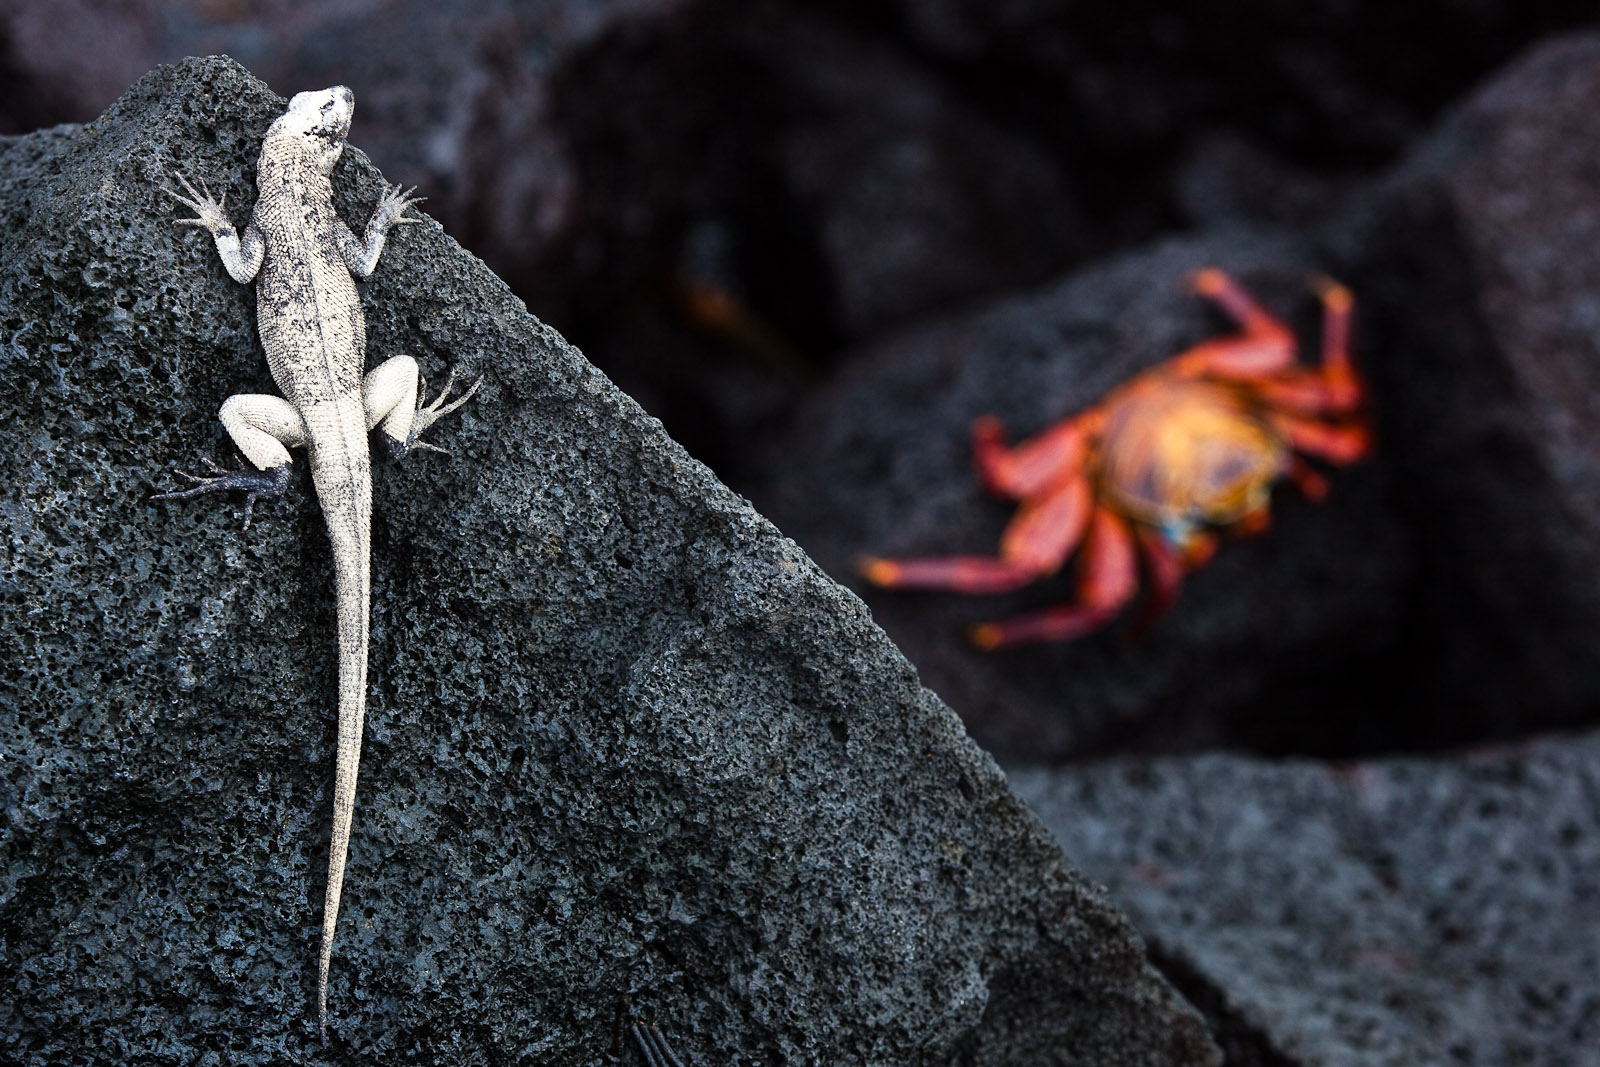 A lava lizard turns white as it gets ready to molt. He's got his eye on a Sally Lightfoot Crab on the lava below him. Photo by Jay Graham